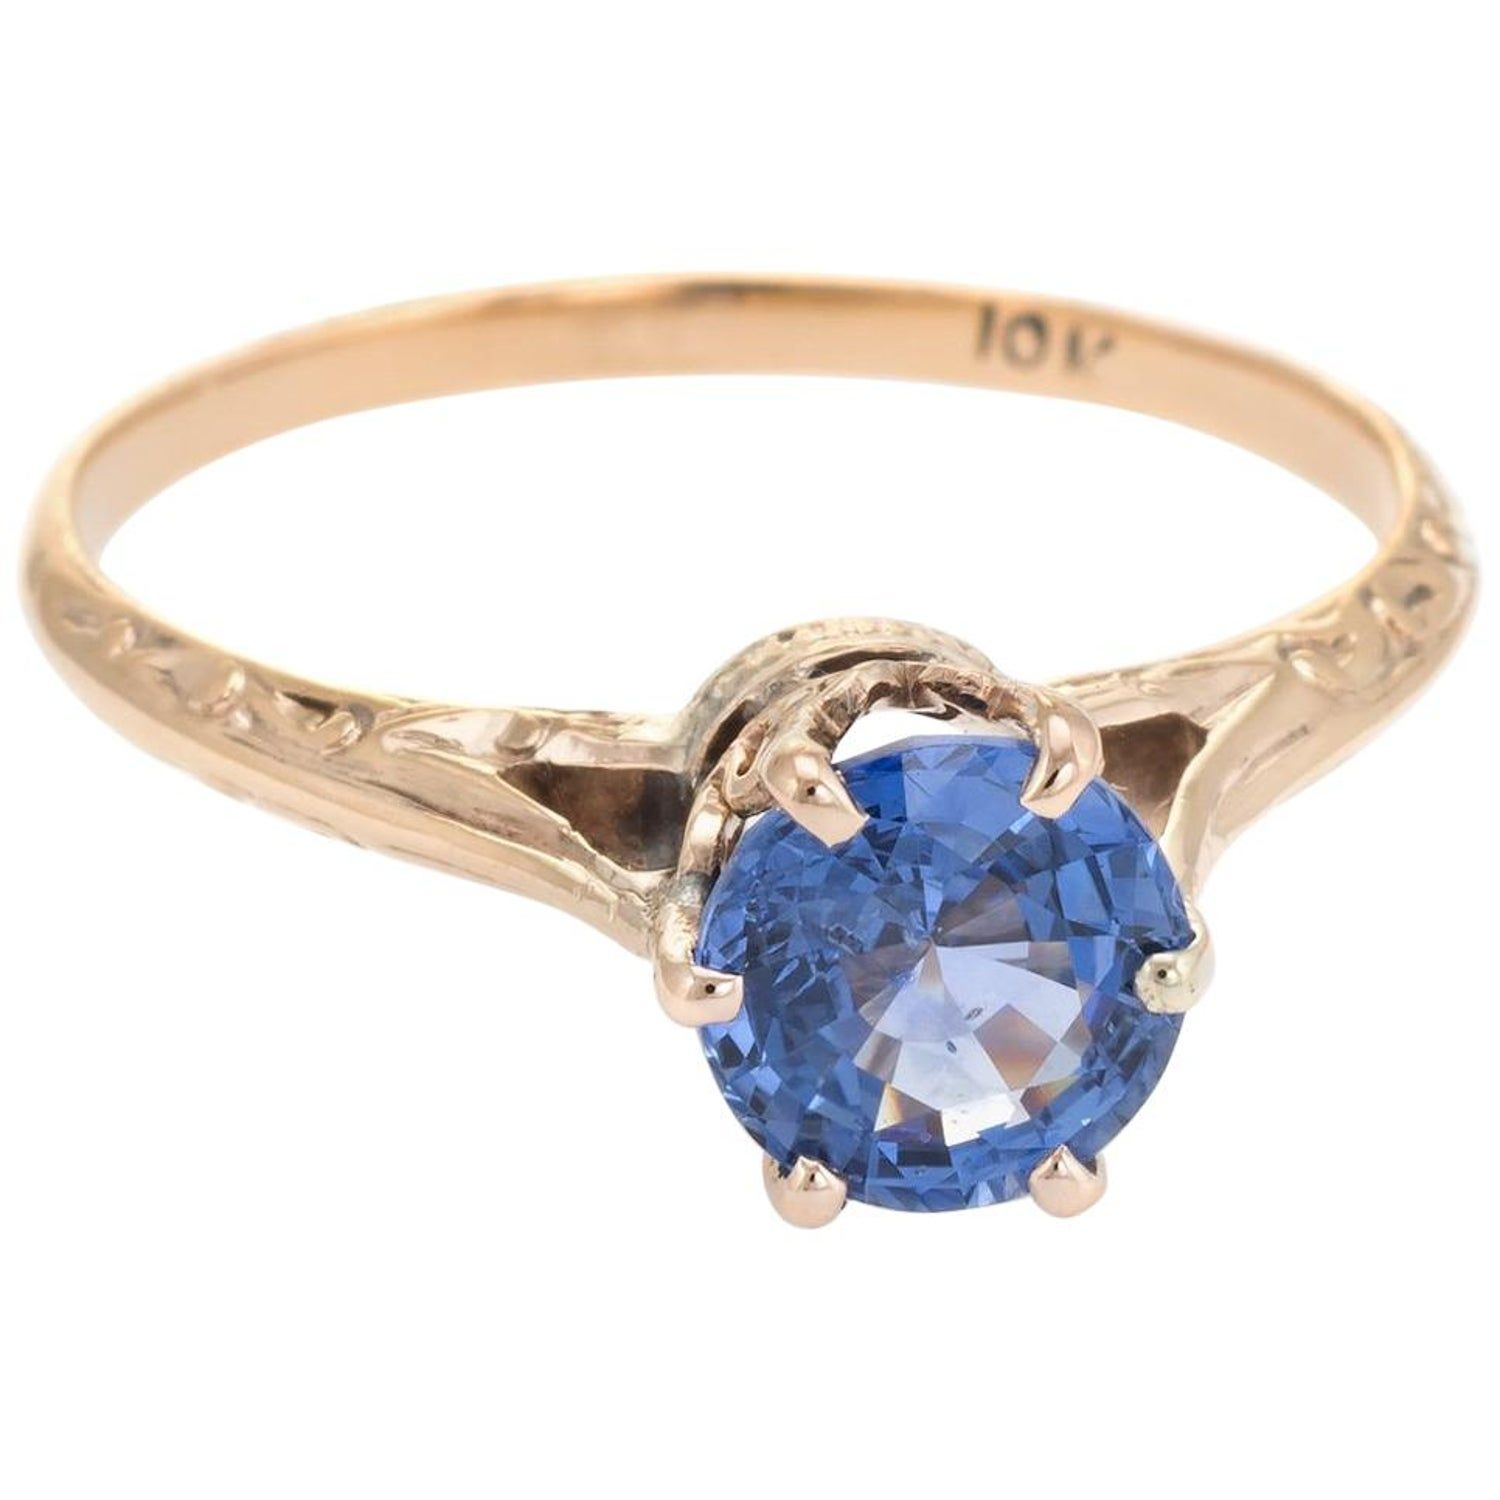 Vintage Natural Sapphire Engagement Ring Cornflower Blue 10 Karat Gold Engagement Rings Sapphire Traditional Engagement Rings Vintage Engagement Rings Sapphire